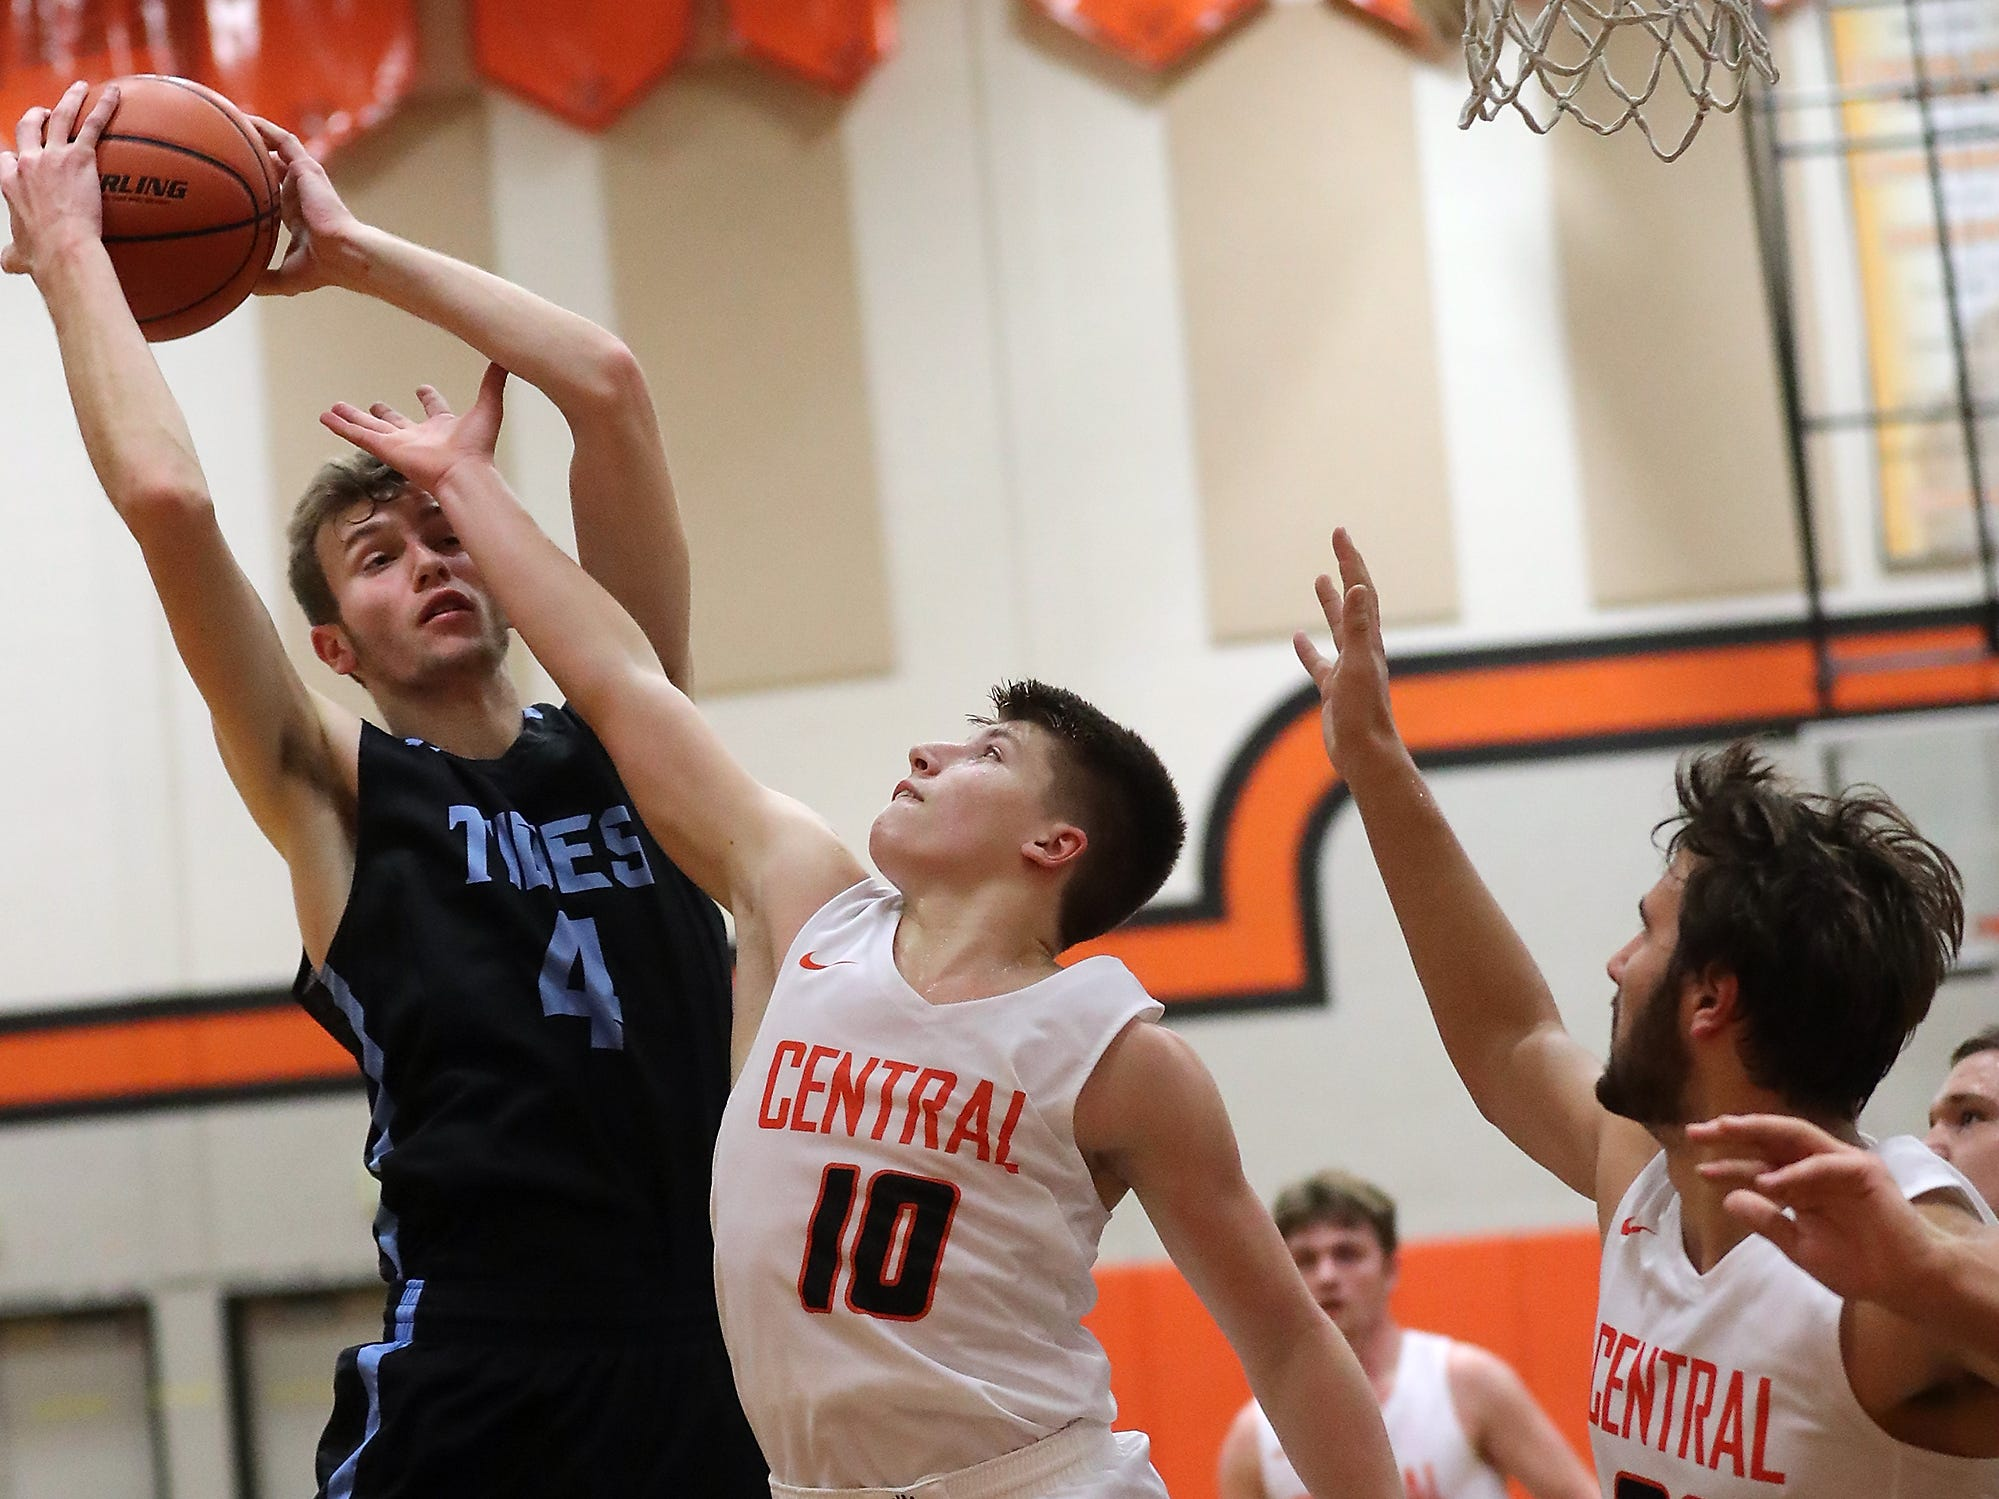 Central Kitsap vs Gig Harbor Boys Basketball in Silverdale on Friday, December 7, 2018.